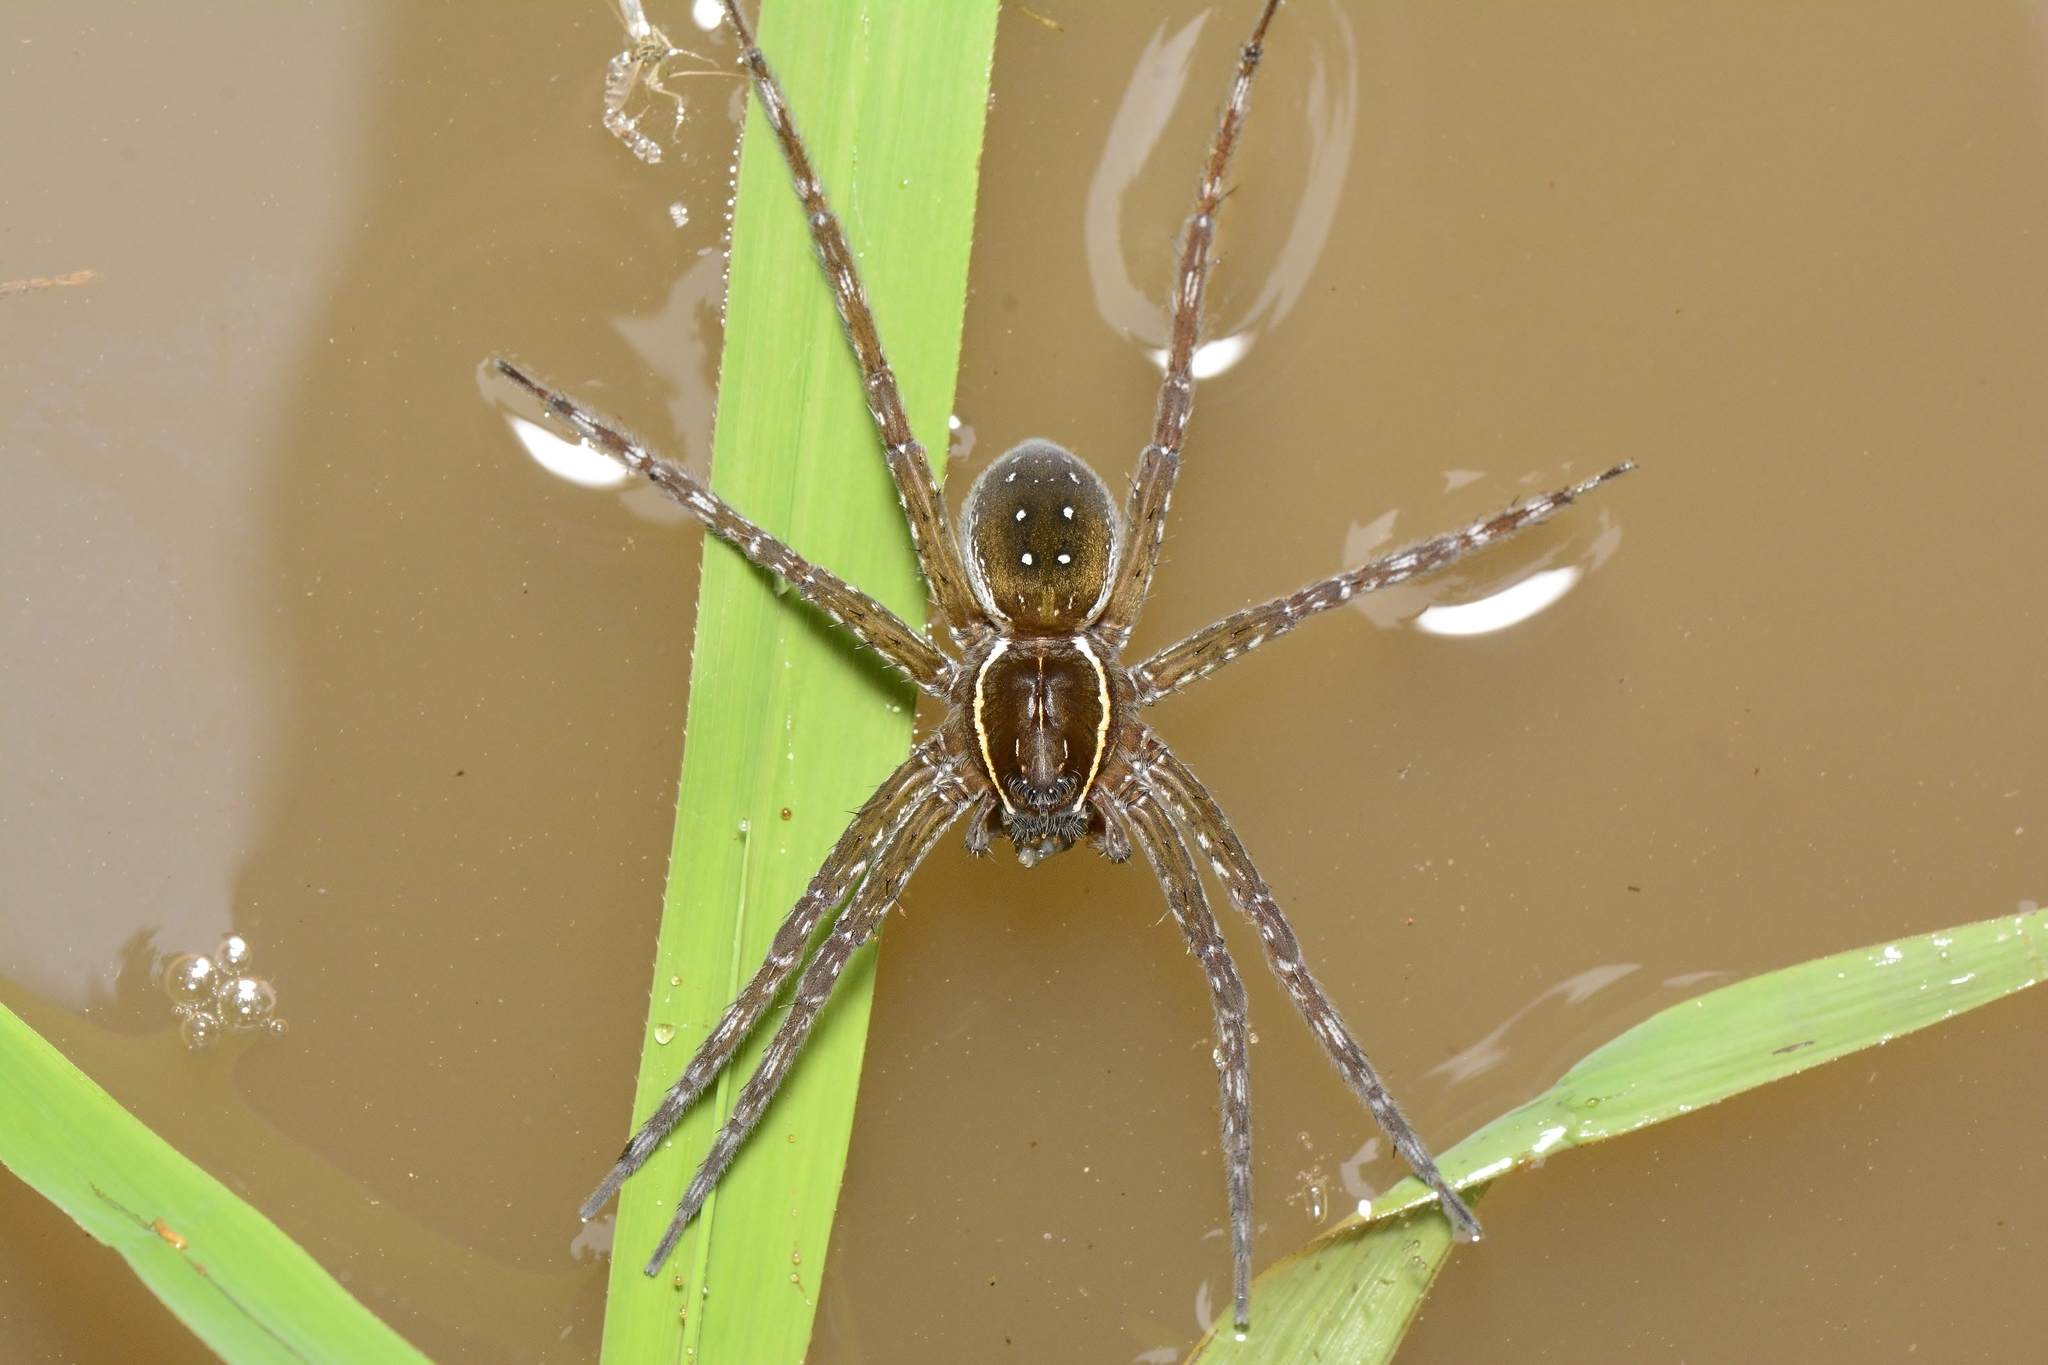 Image of Six-spotted Fishing Spider